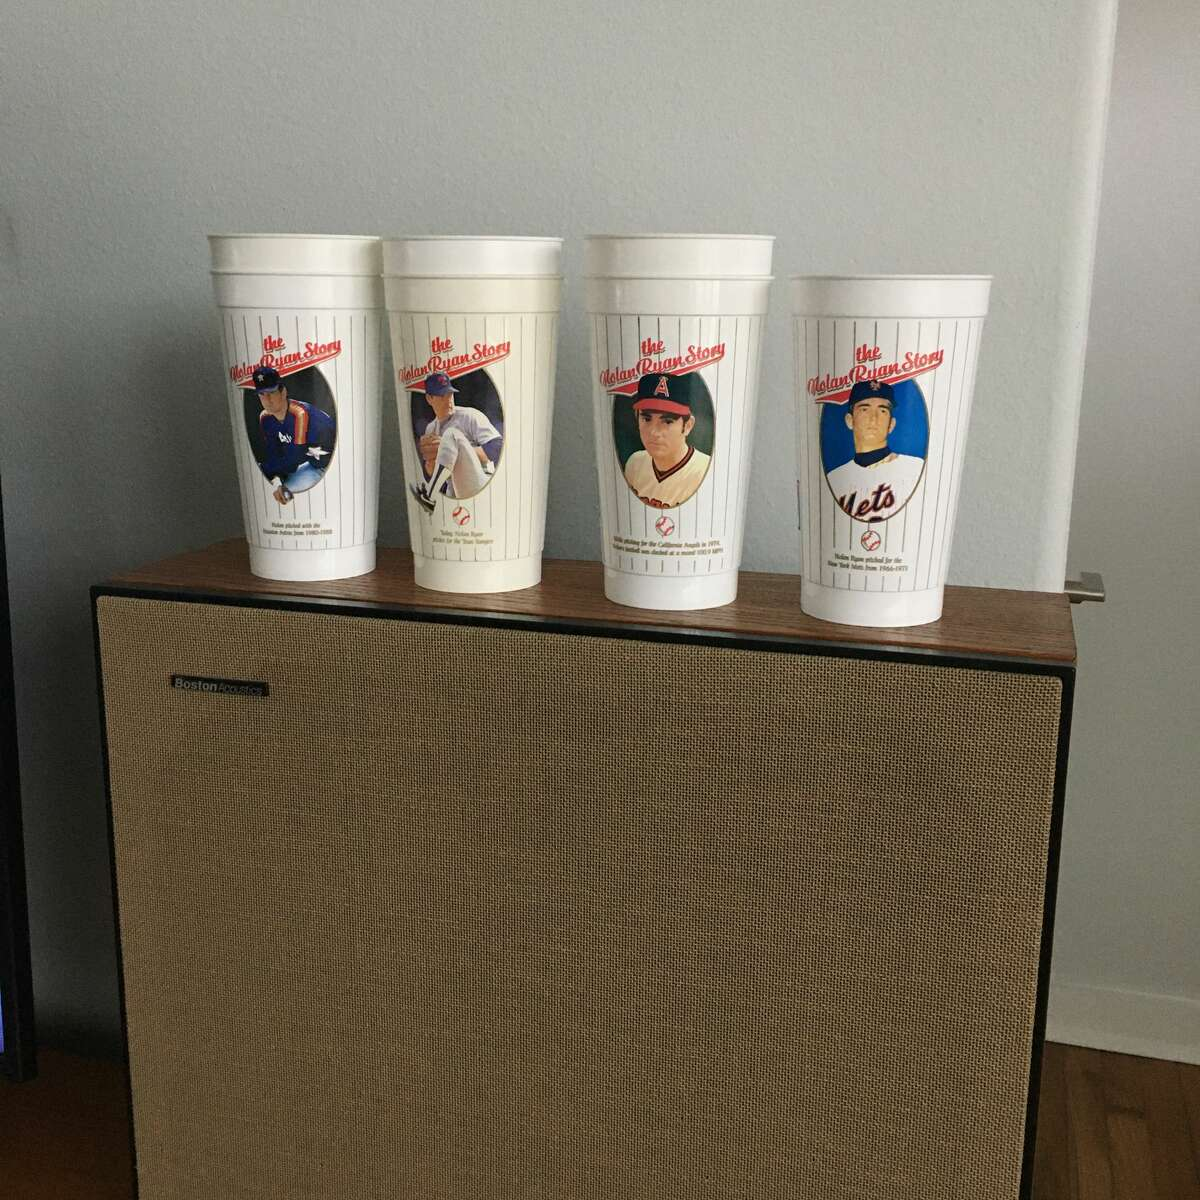 Galveston resident Joshua Ojeda collects retro drinking devices emblazoned with nostalgic images and steeped in colorful history.